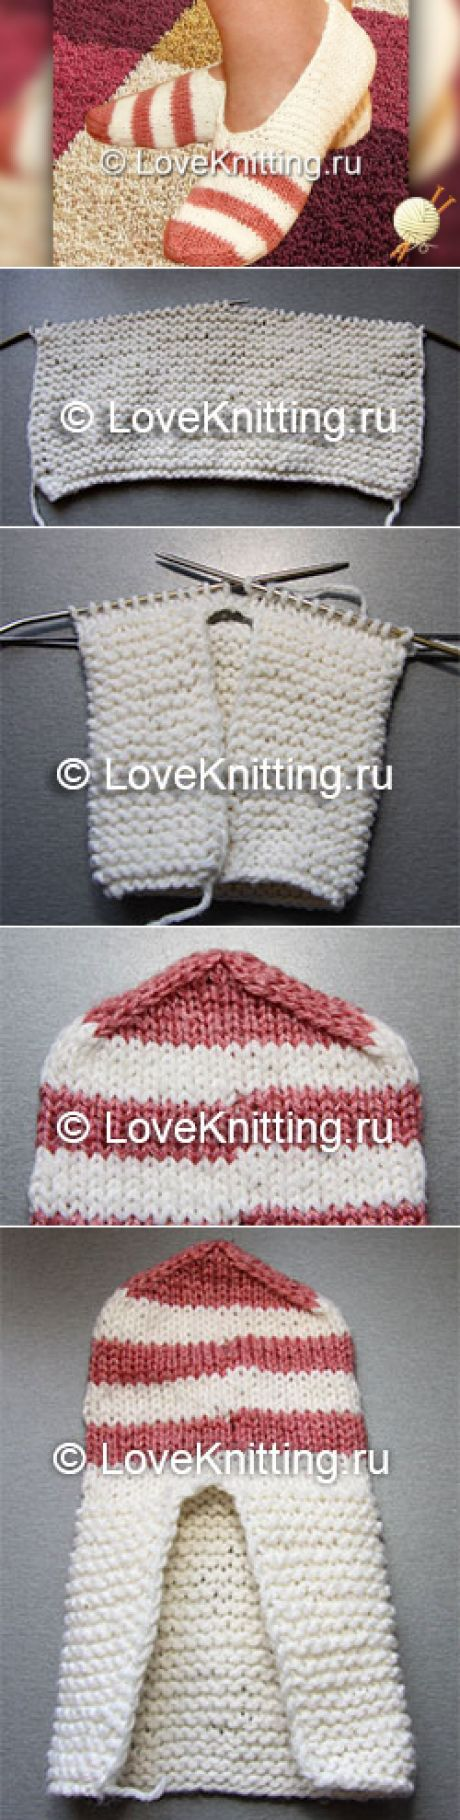 28.03.2015 | Loveknitting.ru